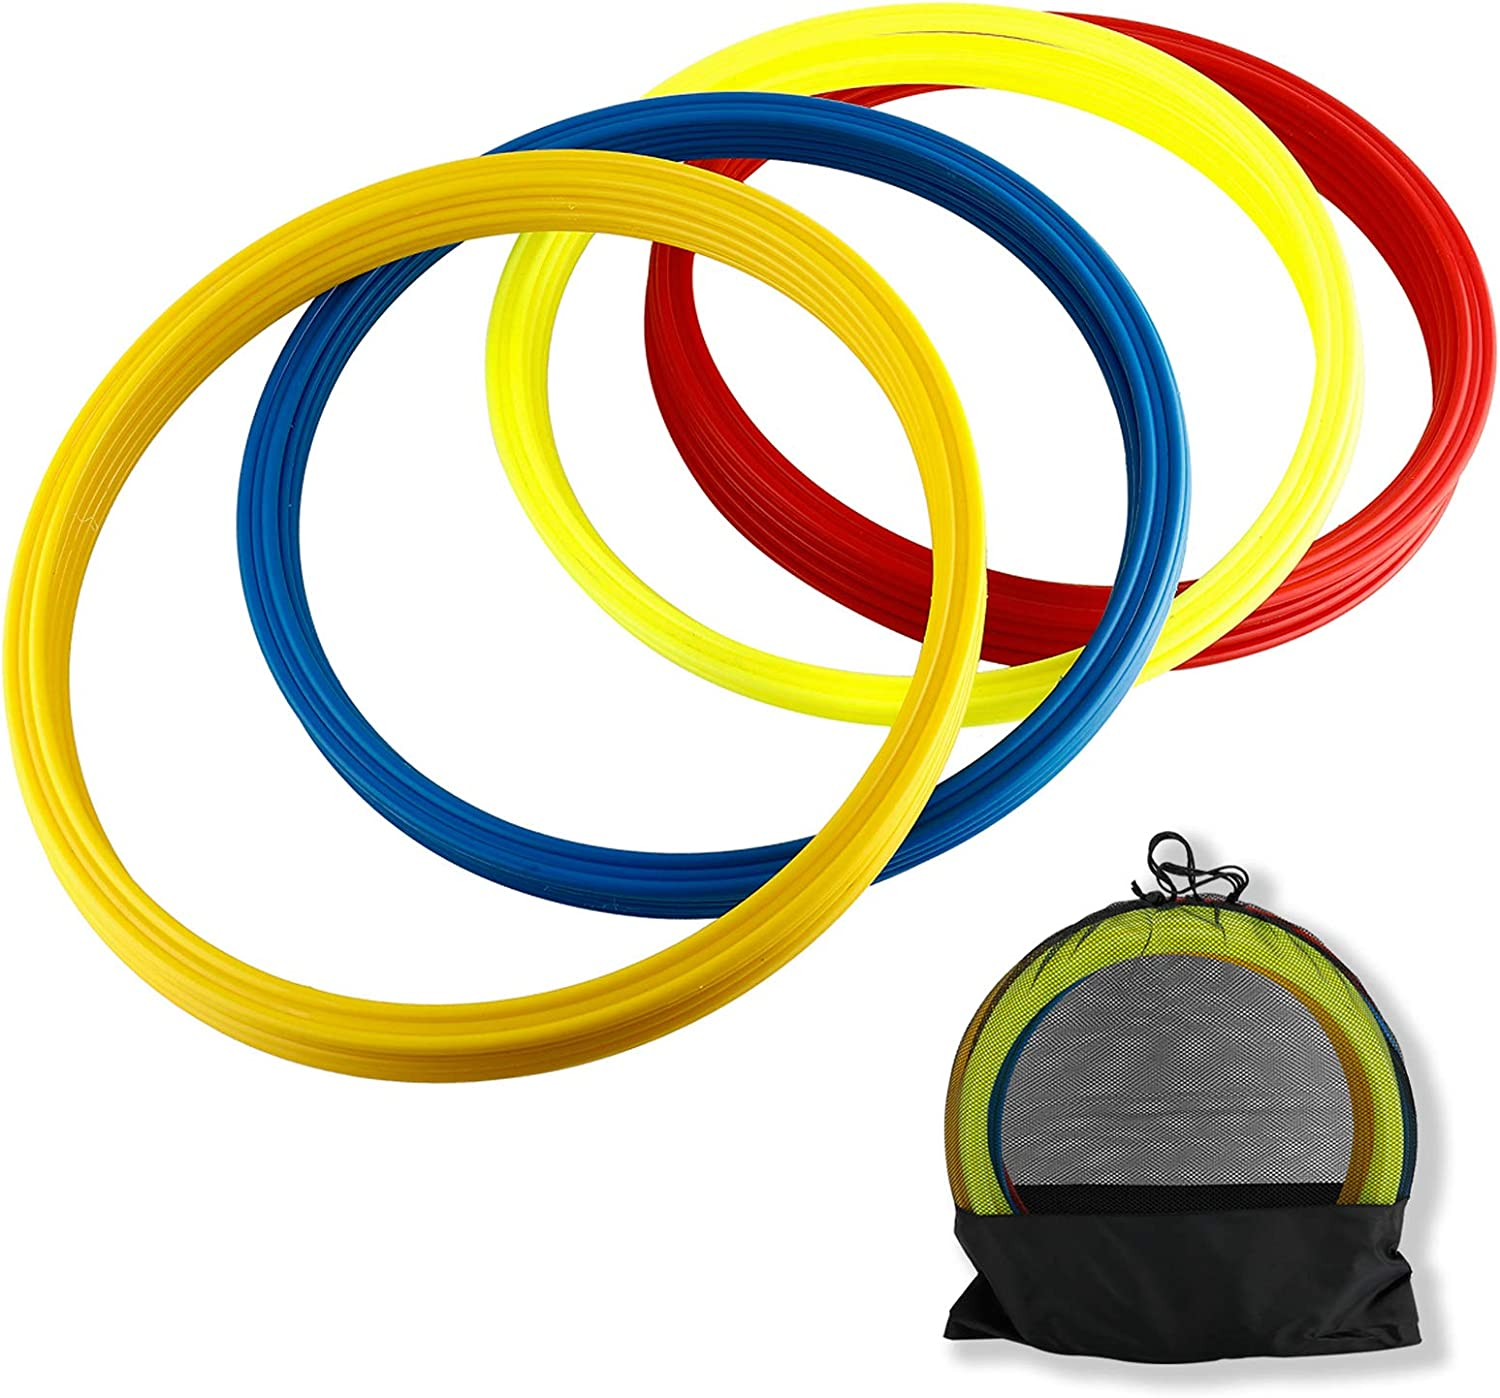 2021new shipping free shipping Yaegoo store 24 Pack Speed and Agility for Trainers Gy Training Rings